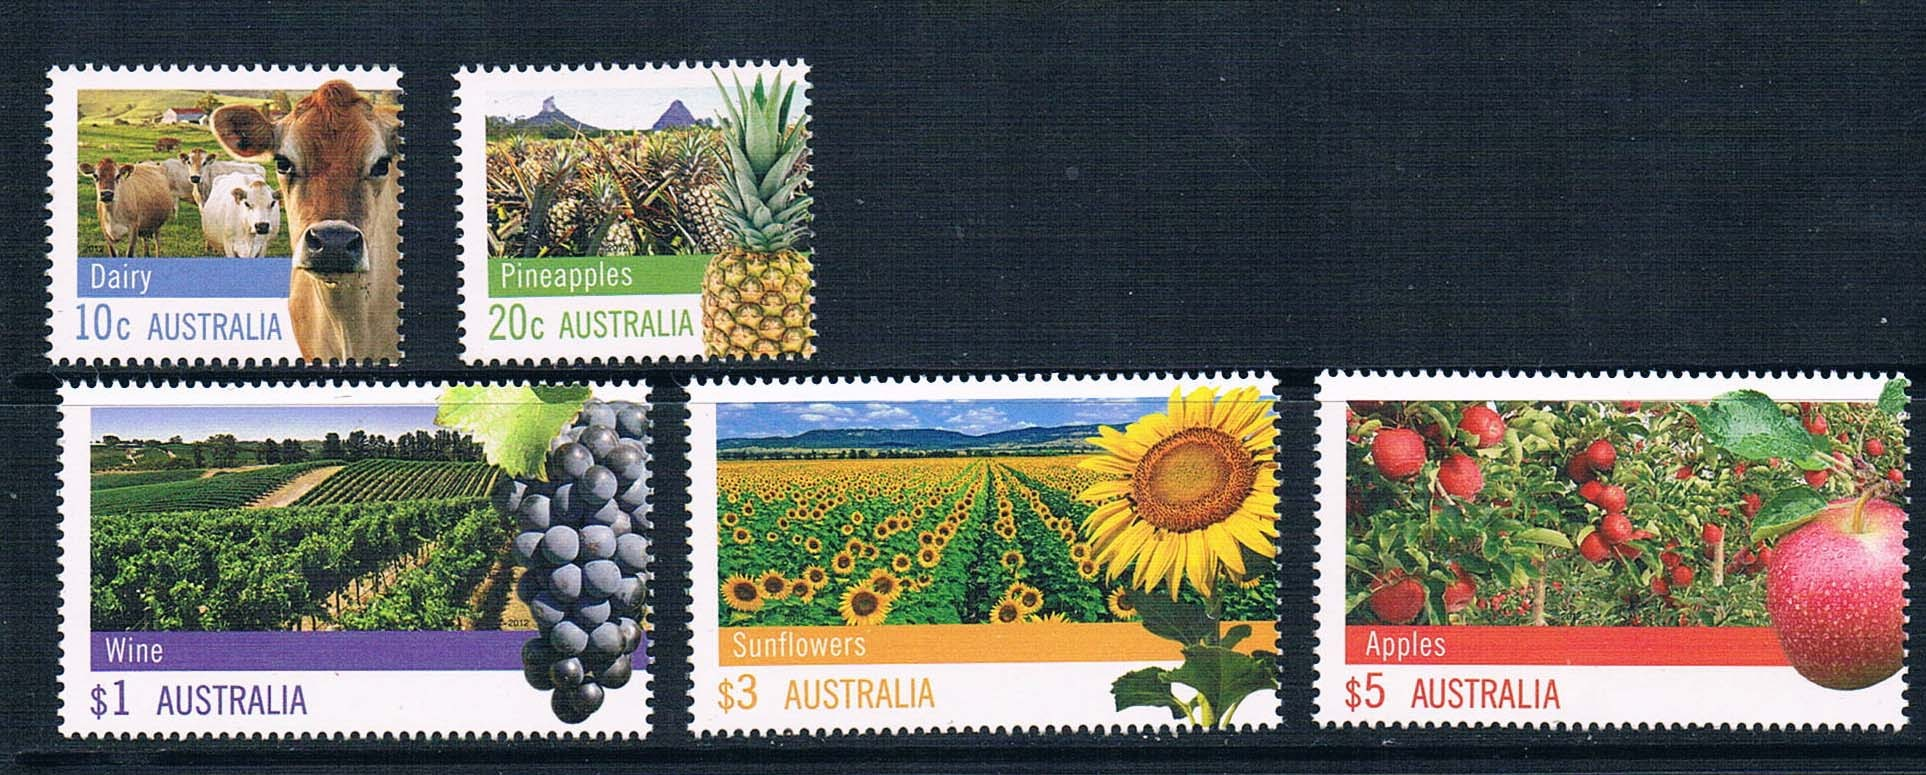 K0896 Australia 2012 agriculture and animal husbandry products grapes cattle sunflower stamp 5 new 0613 катушка для спиннинга agriculture fisheries and magic with disabilities 13